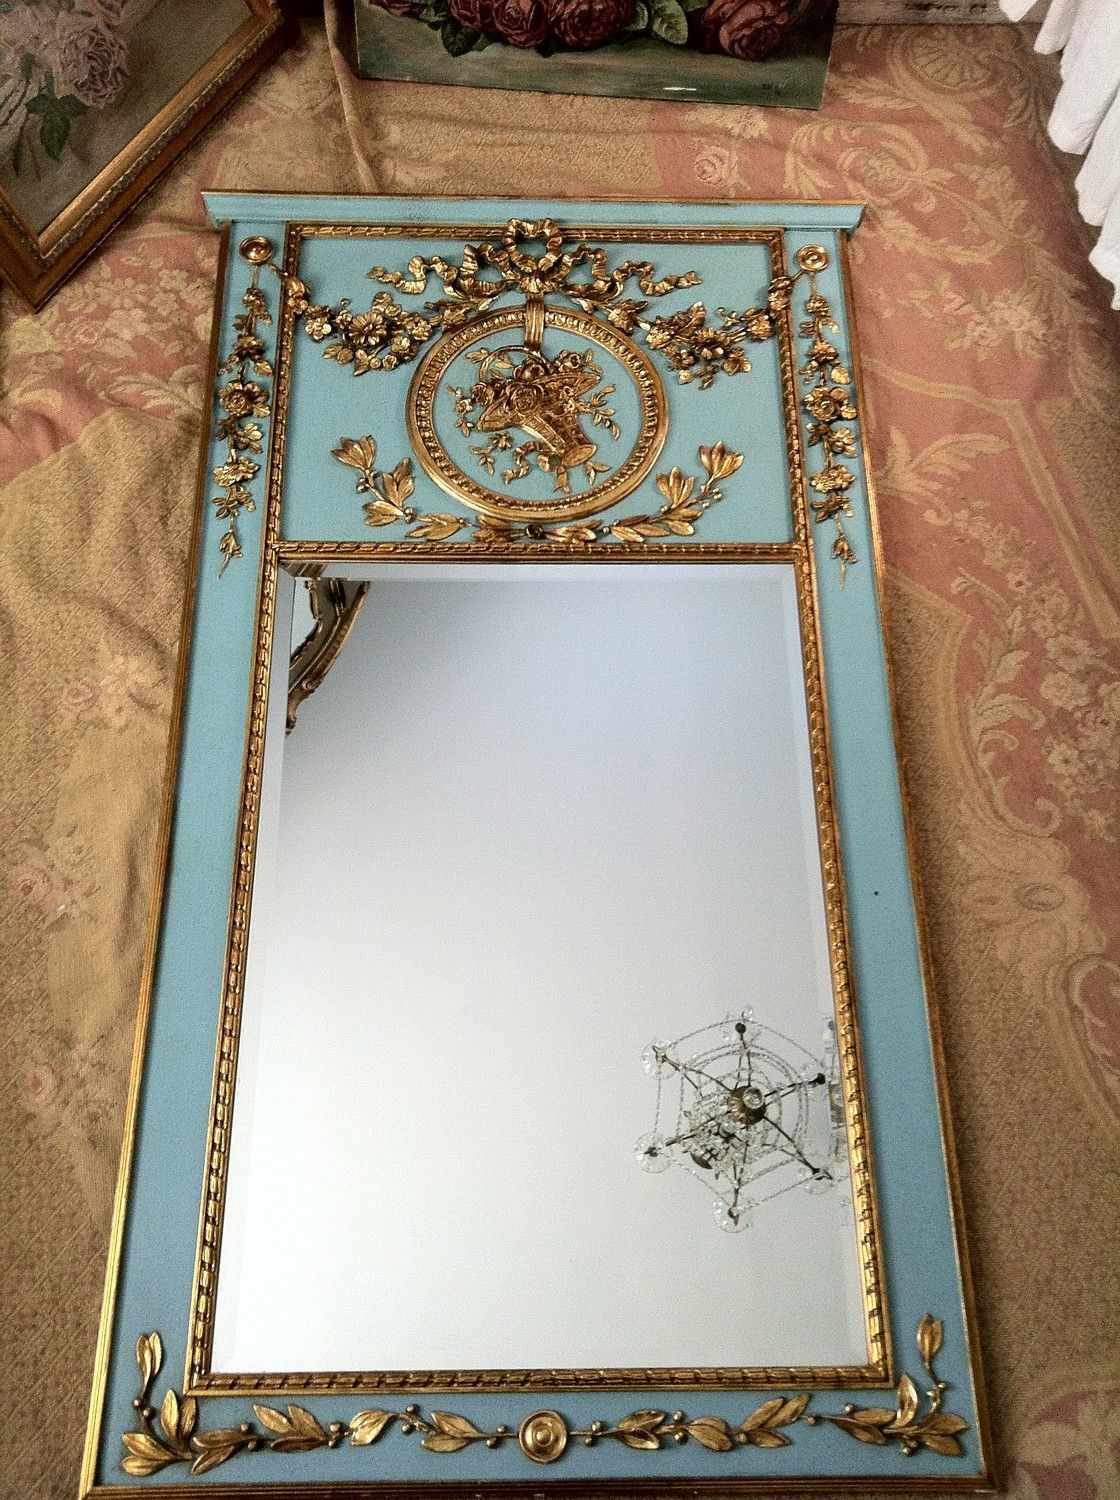 Shabby Chic French Trumeau Mirror With Barbola Roses In A